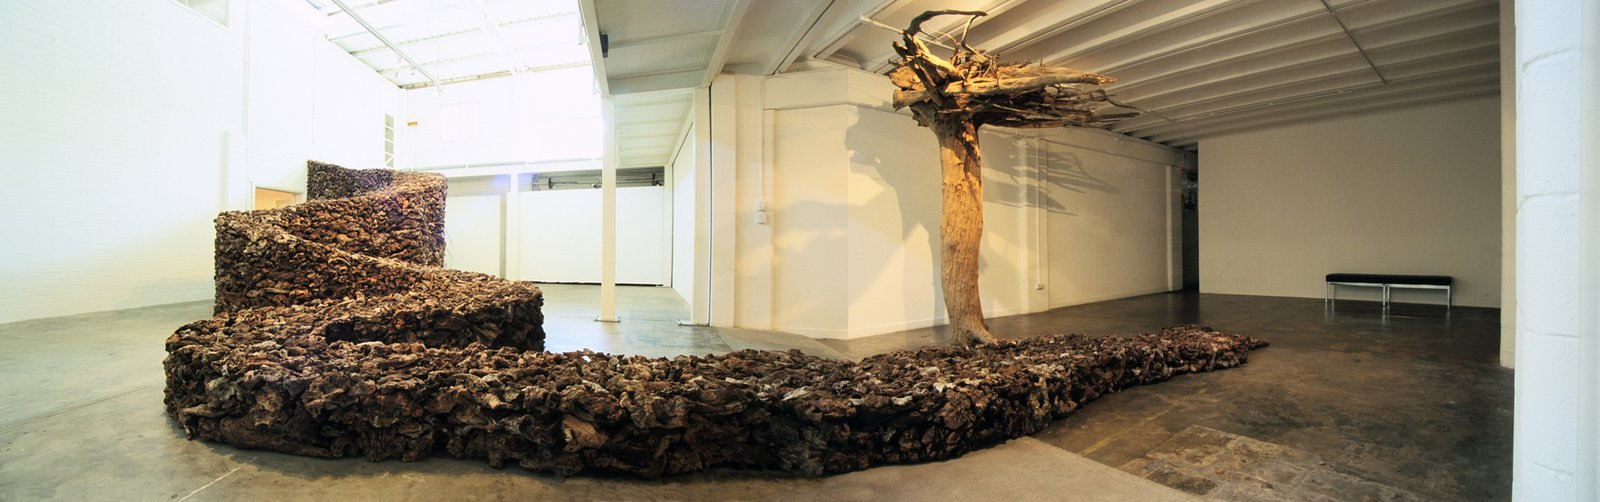 James Darling & Lesley Forwood,  Everyone Lives Downstream,  2004